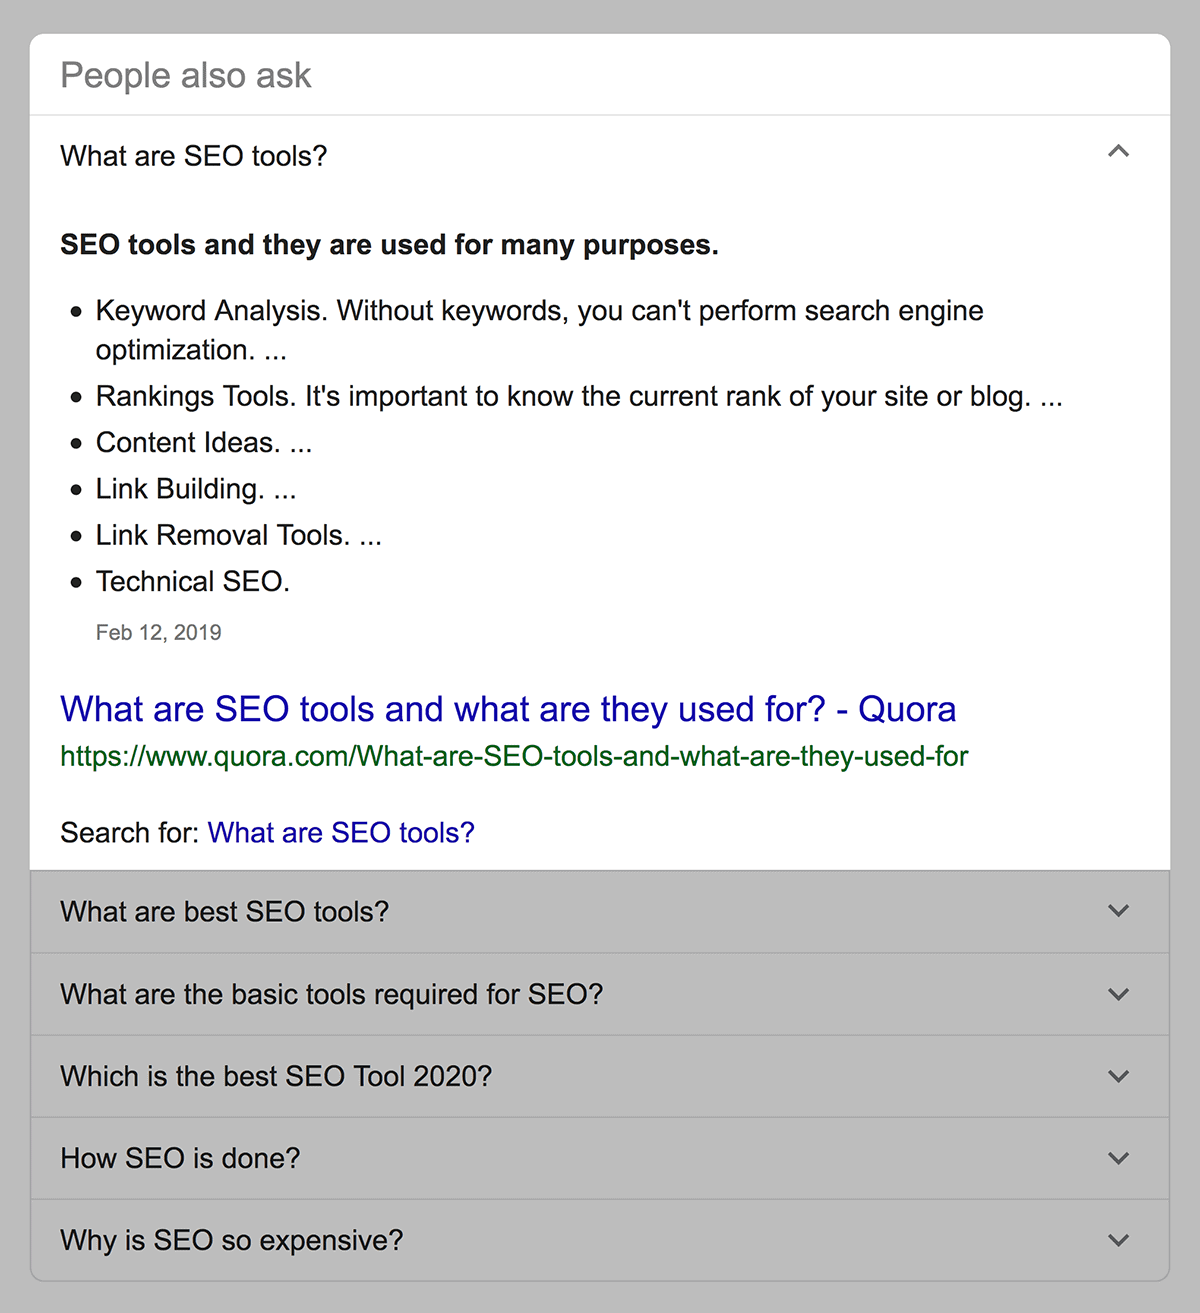 people also ask section - 什么是SERP?